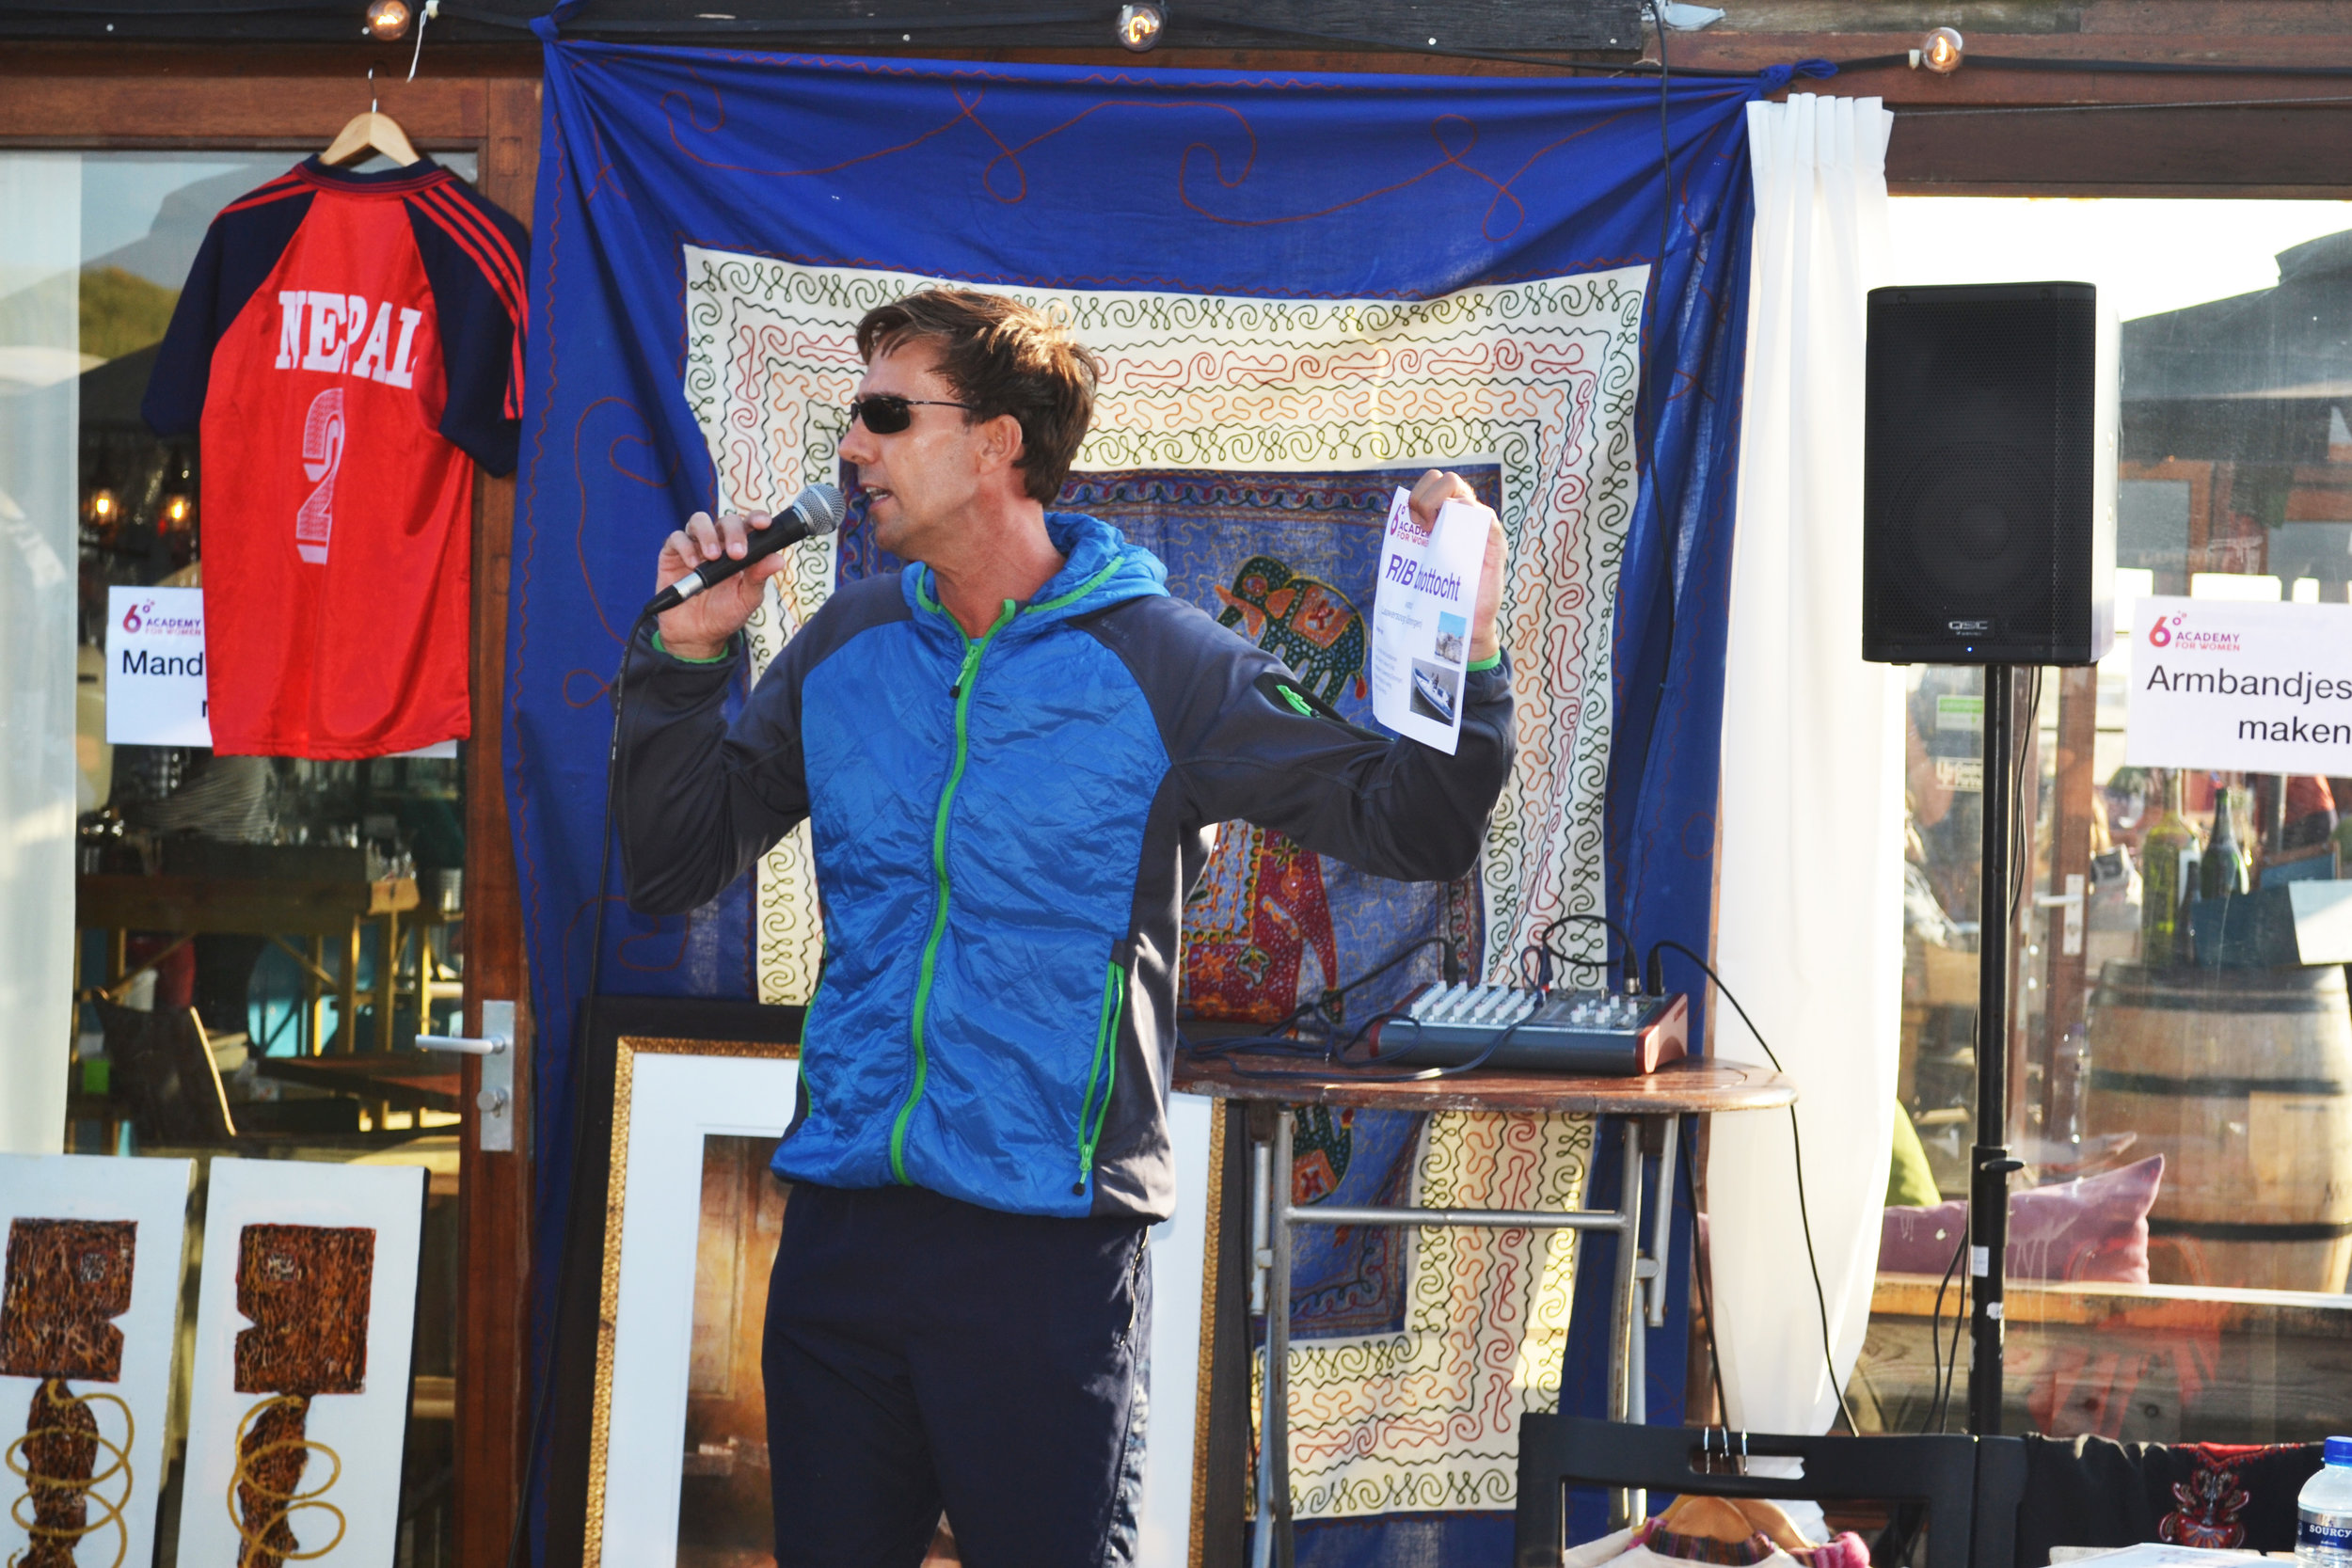 One of our fundraising team, Arjen's auction master skill was impressive